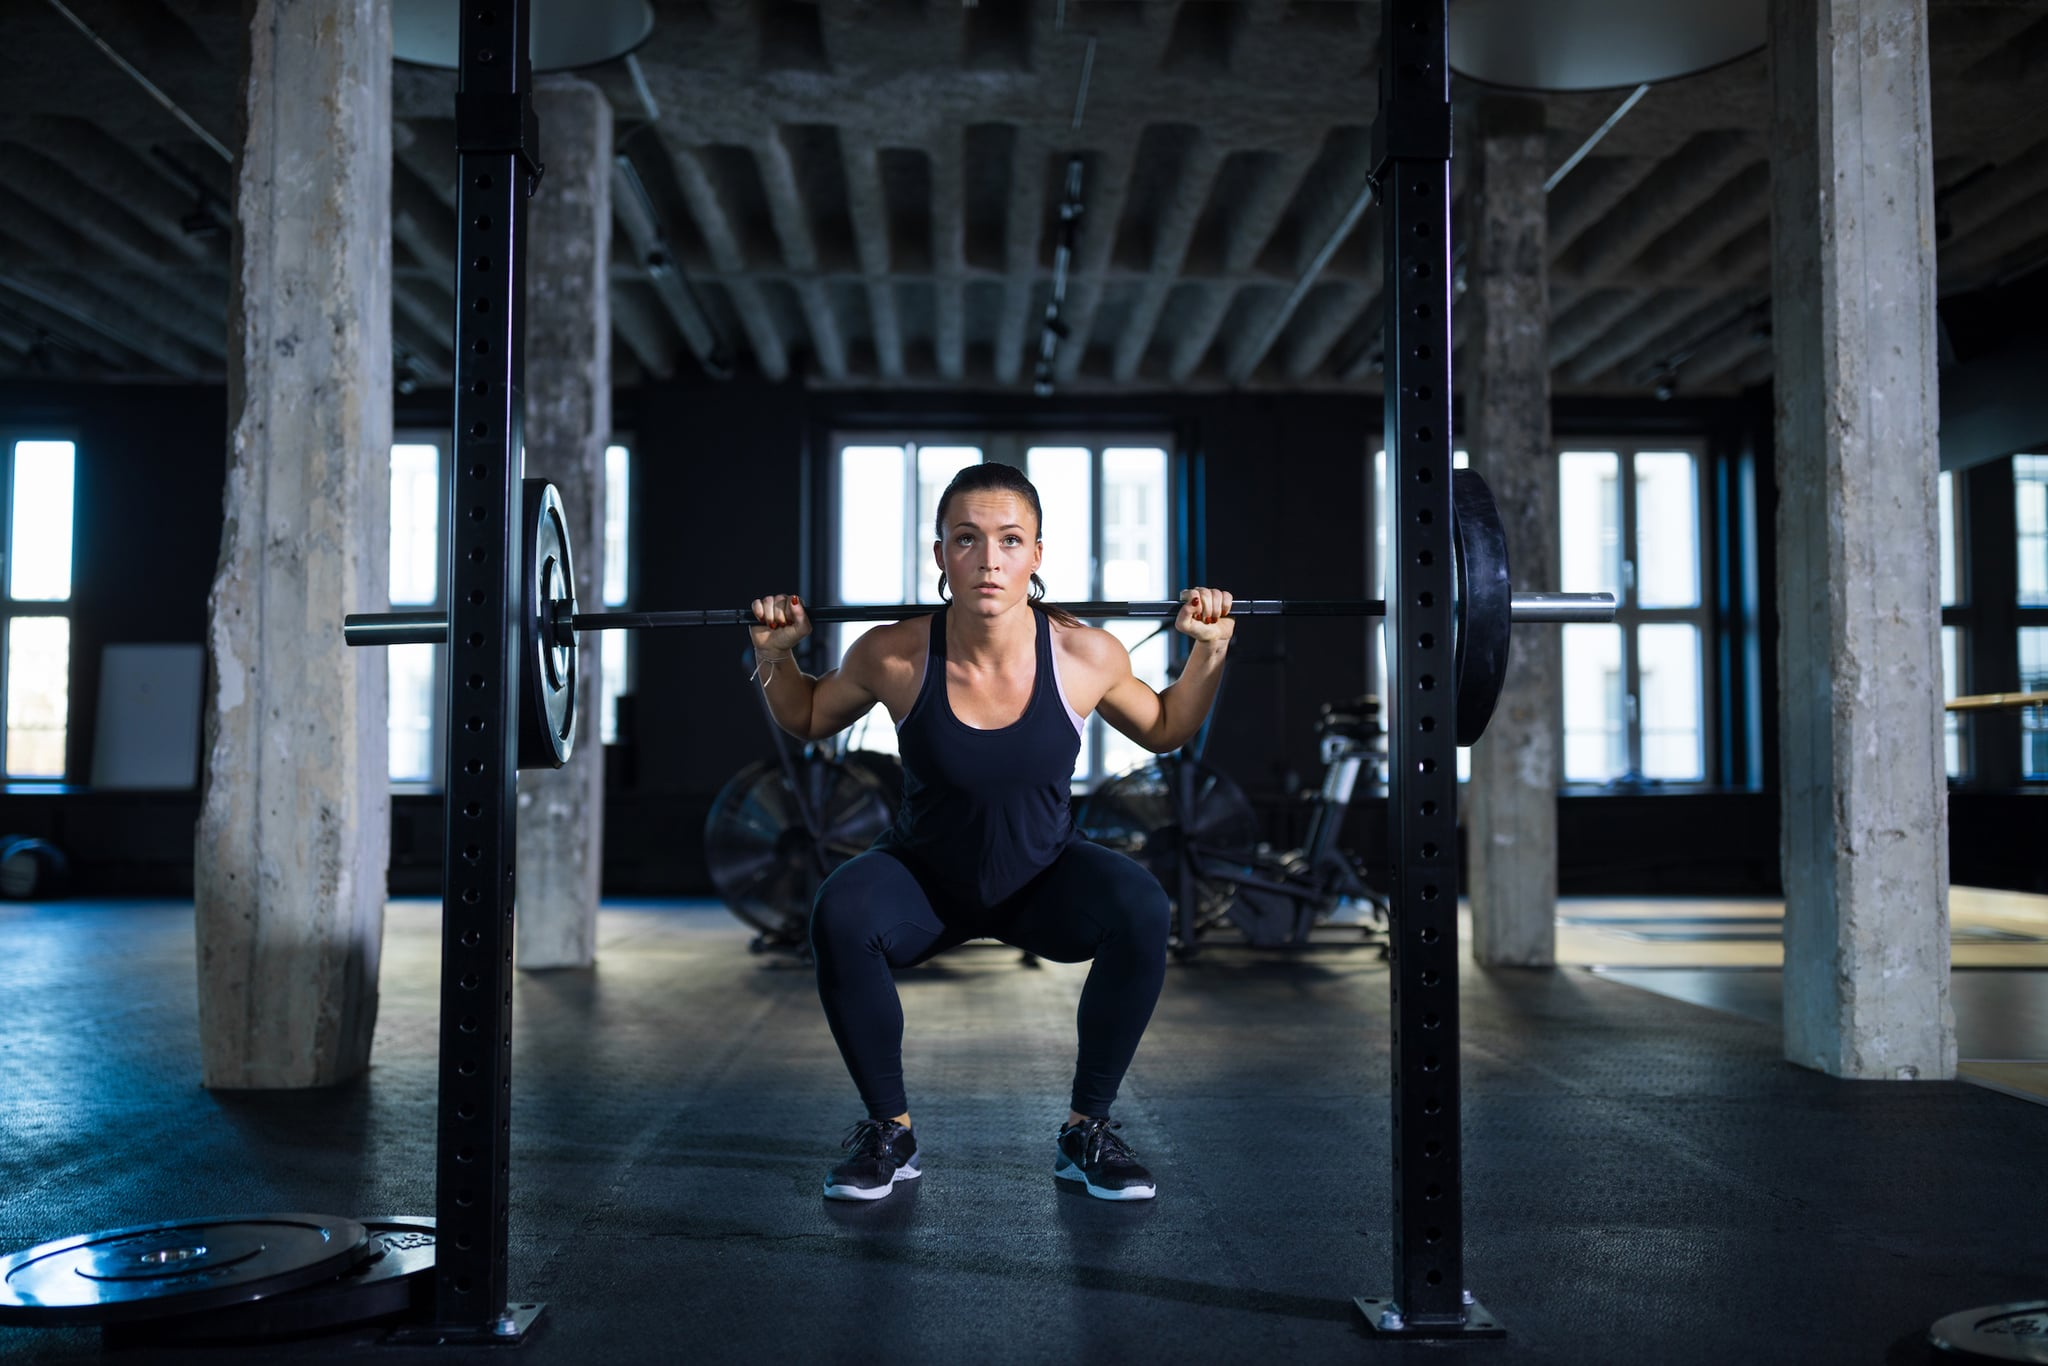 Determined woman crouching while exercising with barbell. Female athlete is working hard in gym. She is doing weightlifting.